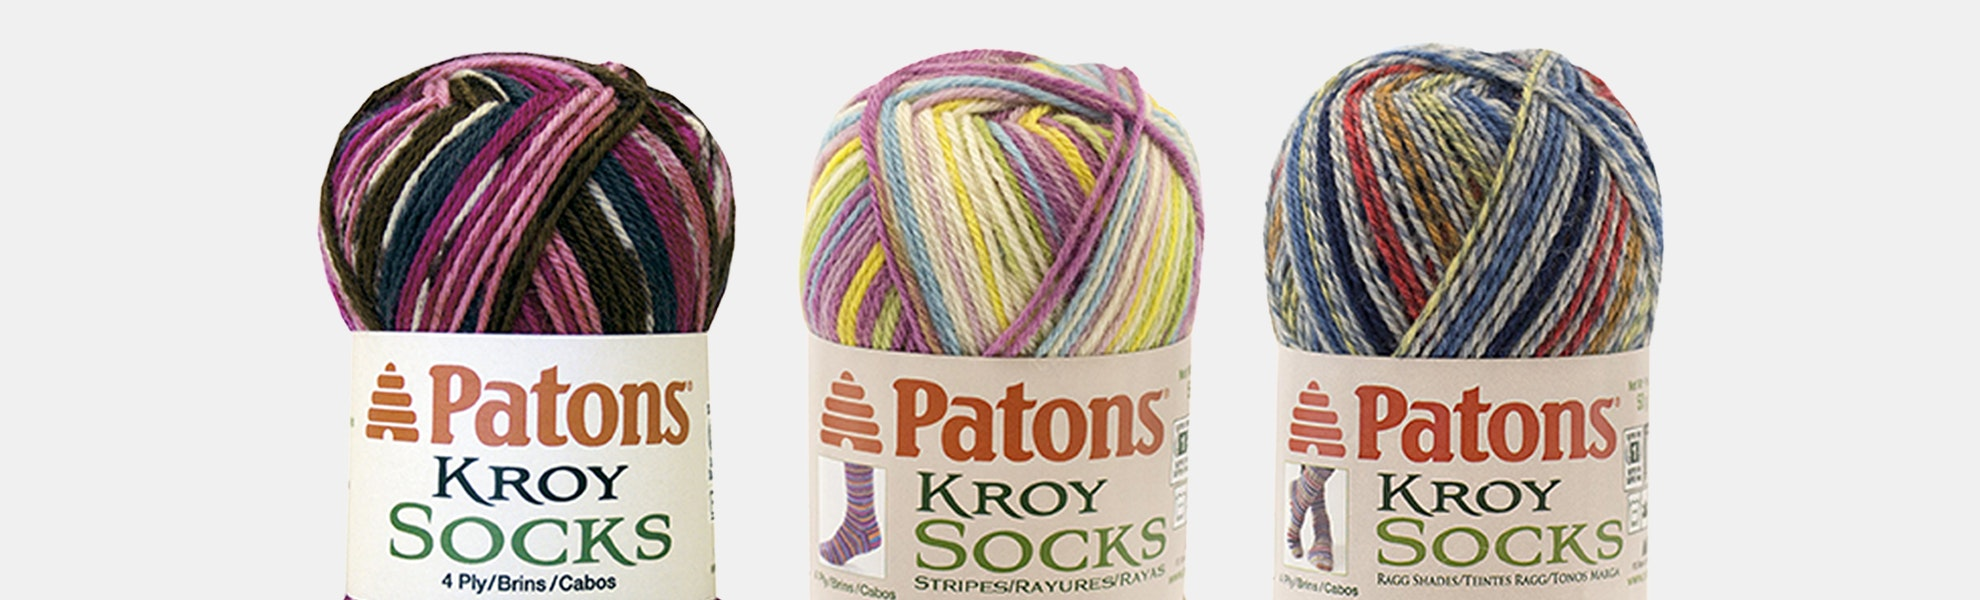 Kroy Socks Yarn Bright Colors by Patons - 3PK